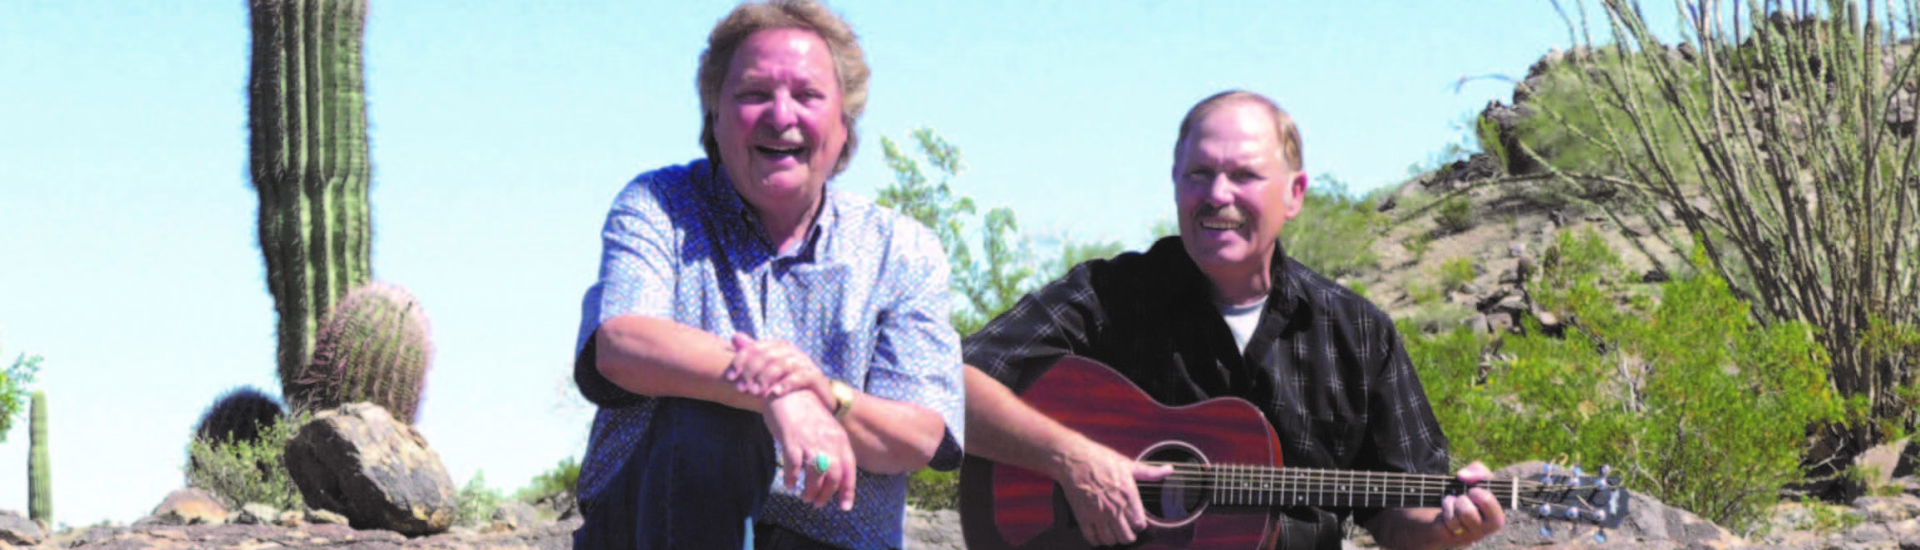 Dave Anderson and Roger Walck – Praise & Worship